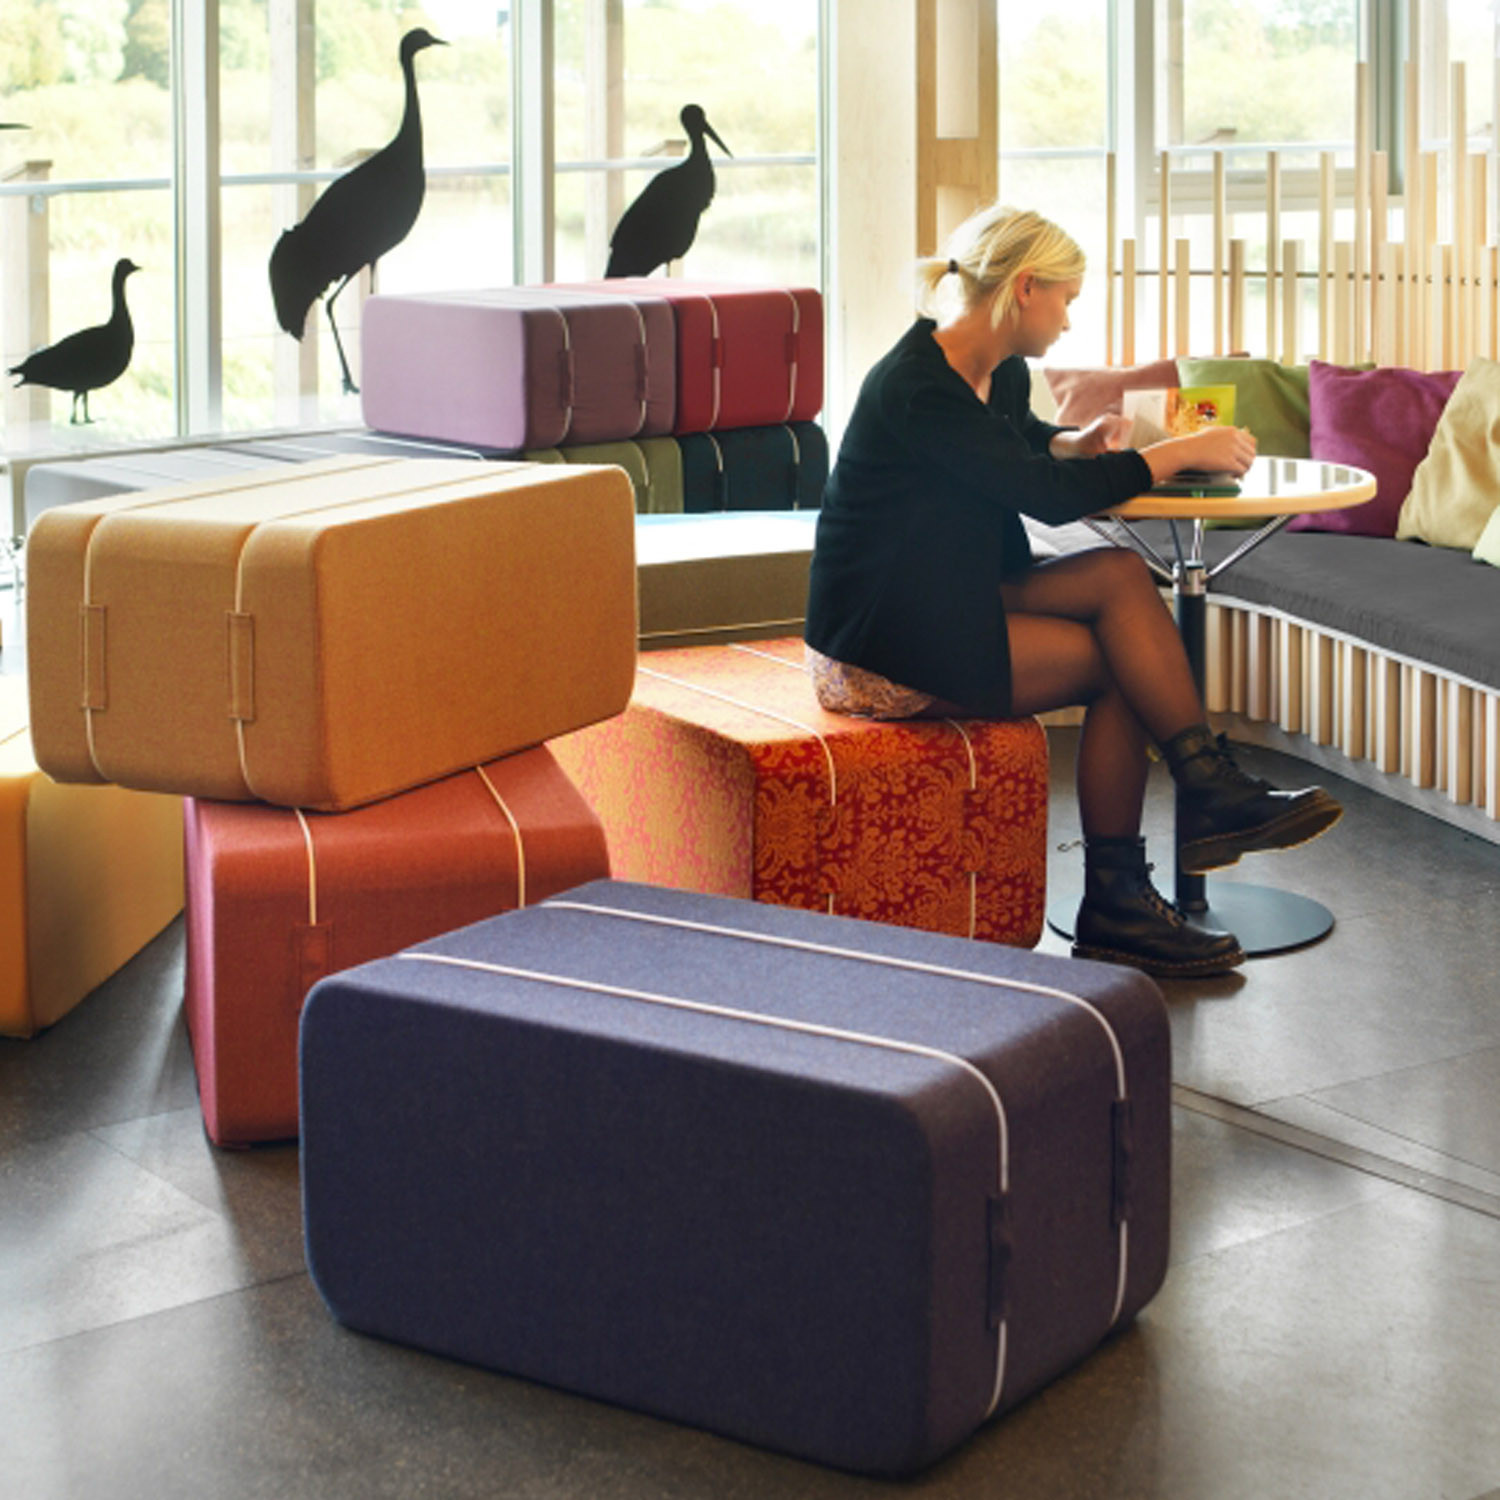 PM A11 Soft Seating Hay Bales by Bla Station